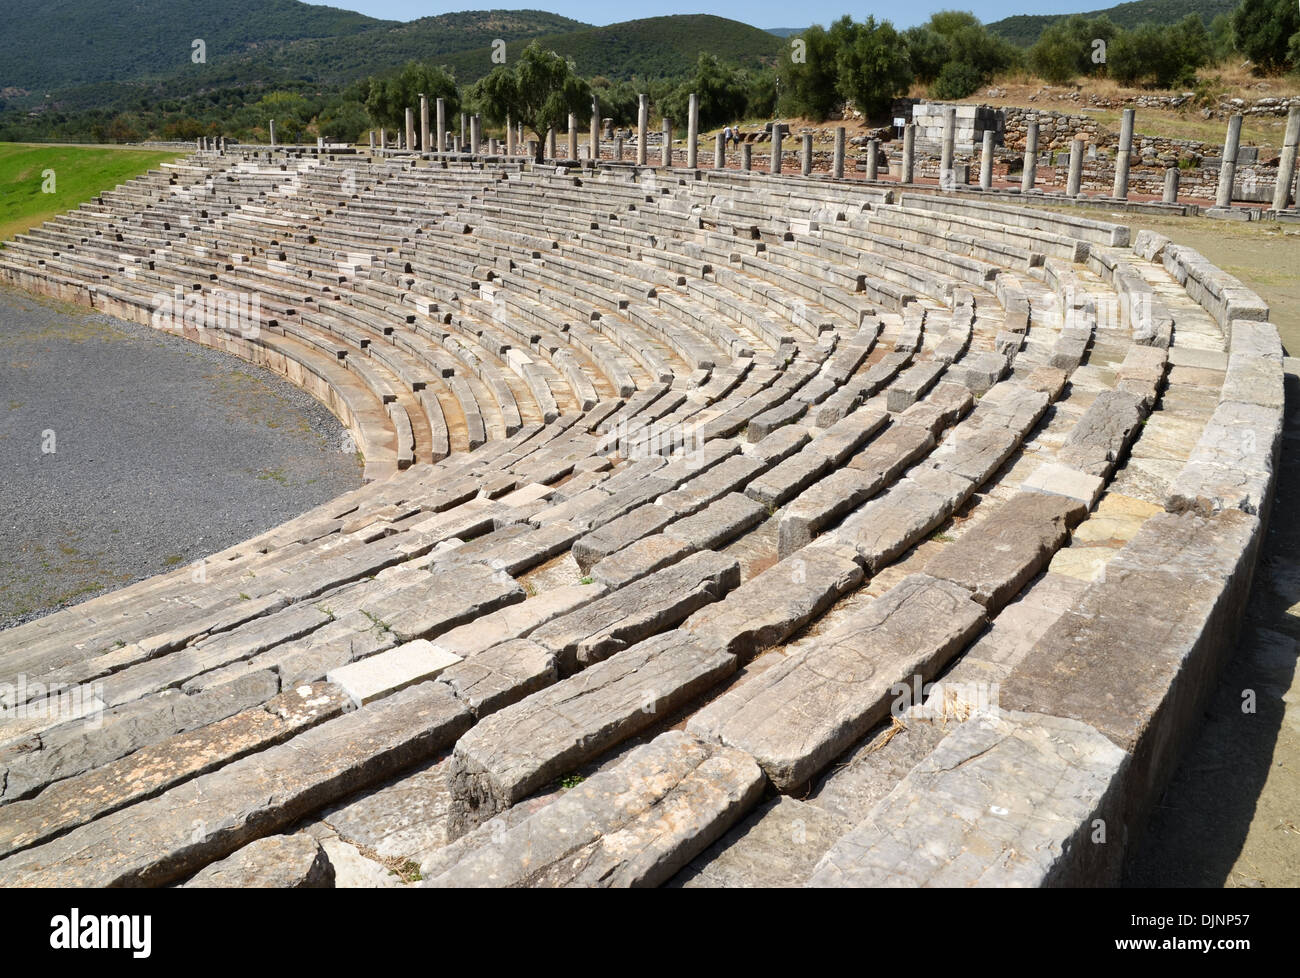 Stadium seating at Messina in Greece number 3416 - Stock Image